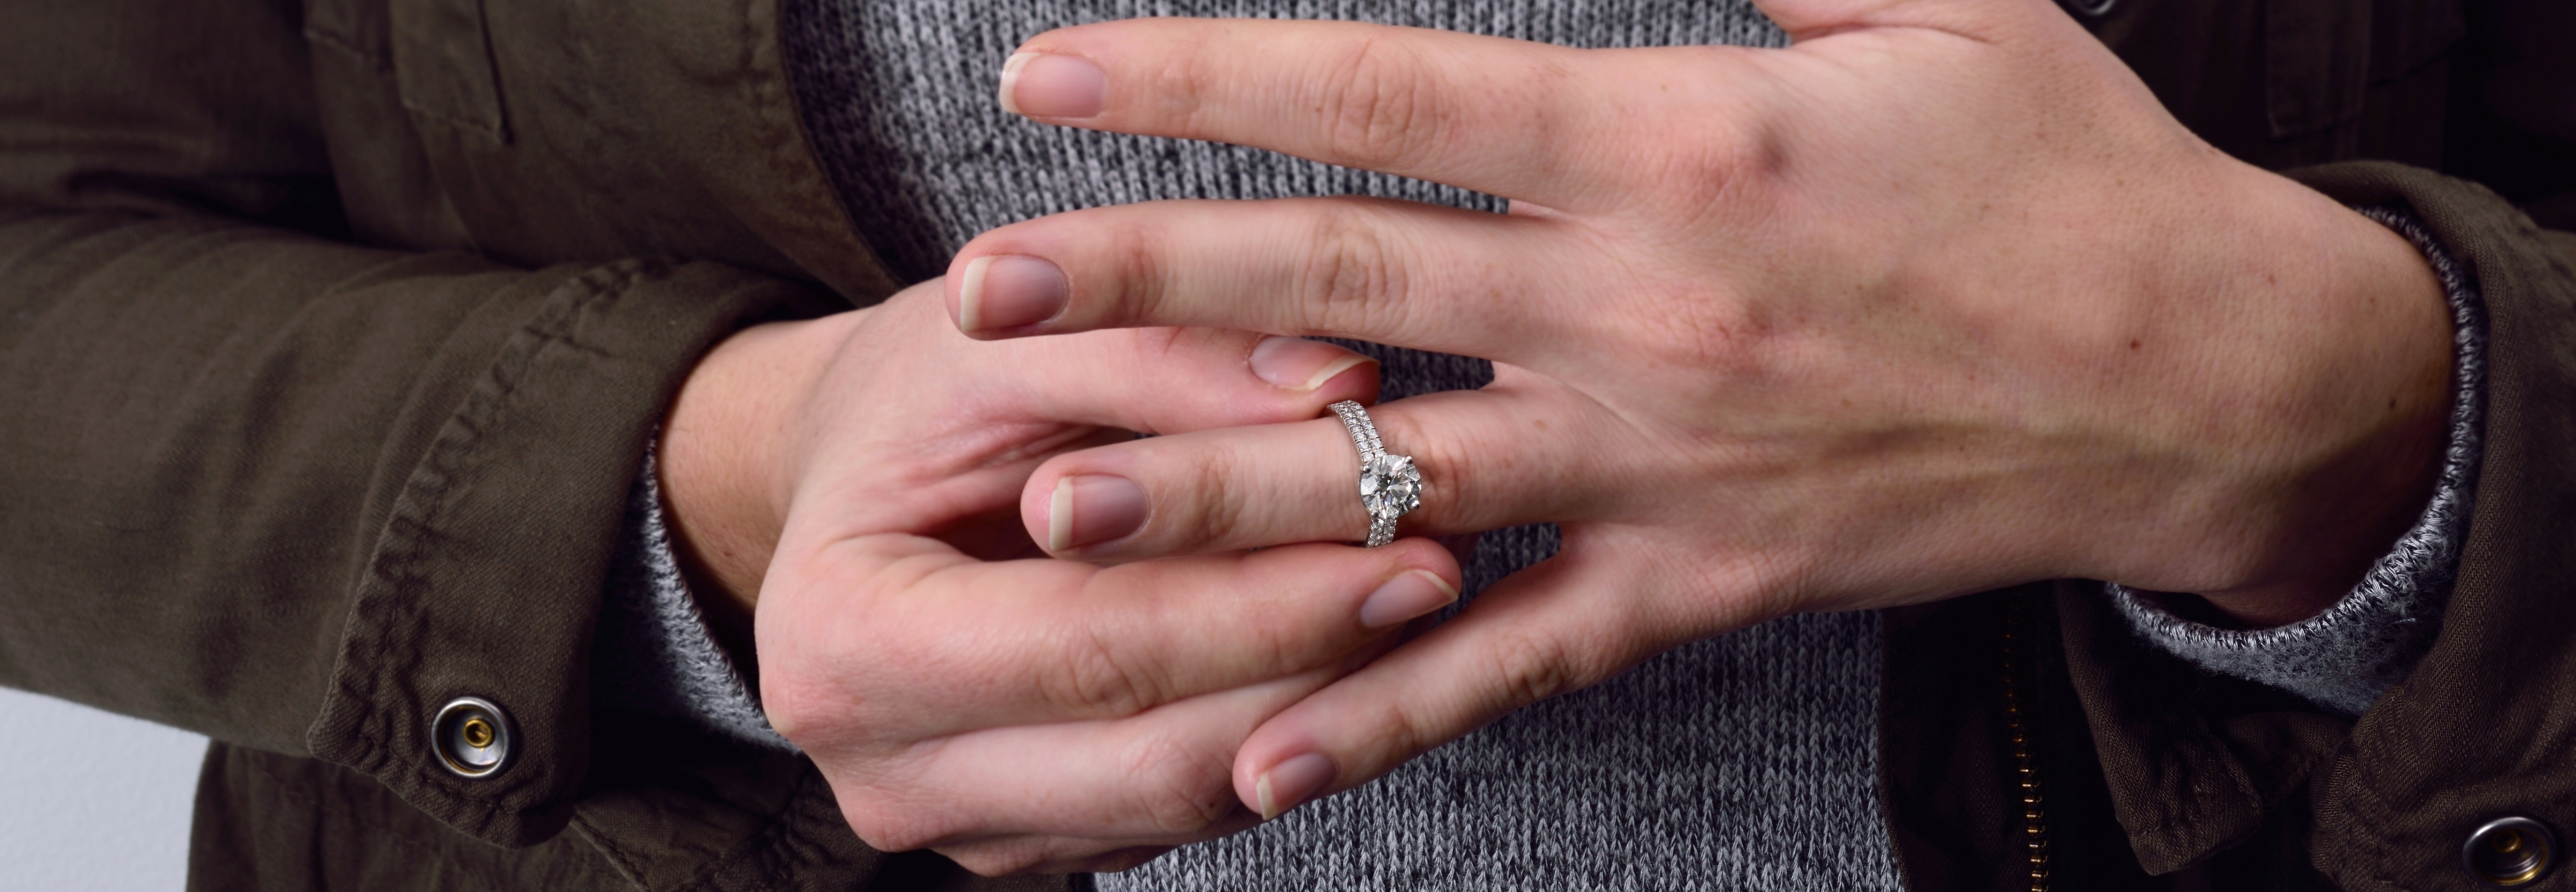 [Quick Tip] 3 Easy Ways To Secretly Find Out Her Ring Size